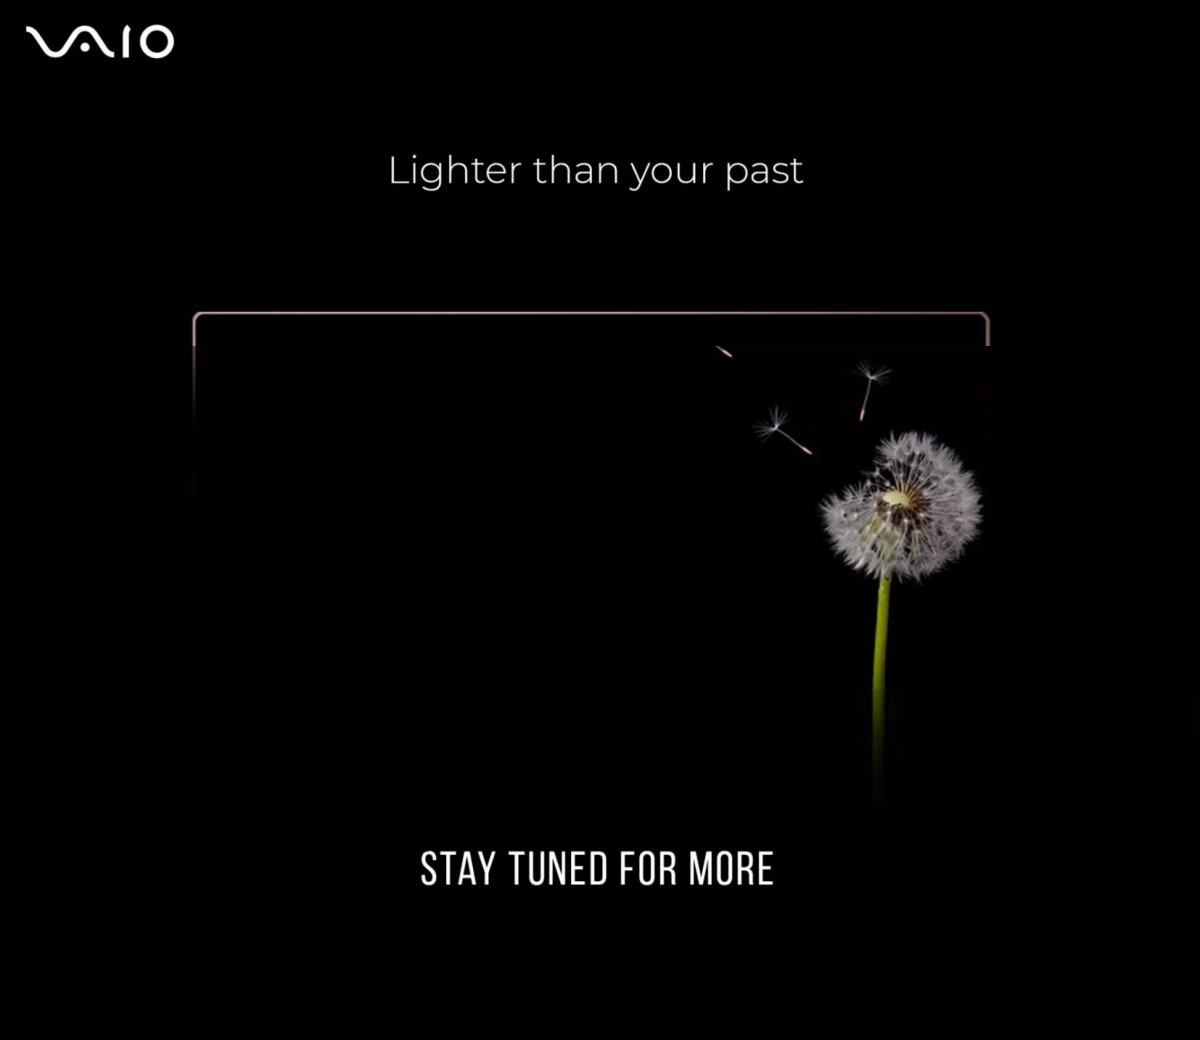 New teaser on Flipkart marks the return of Vaio laptops